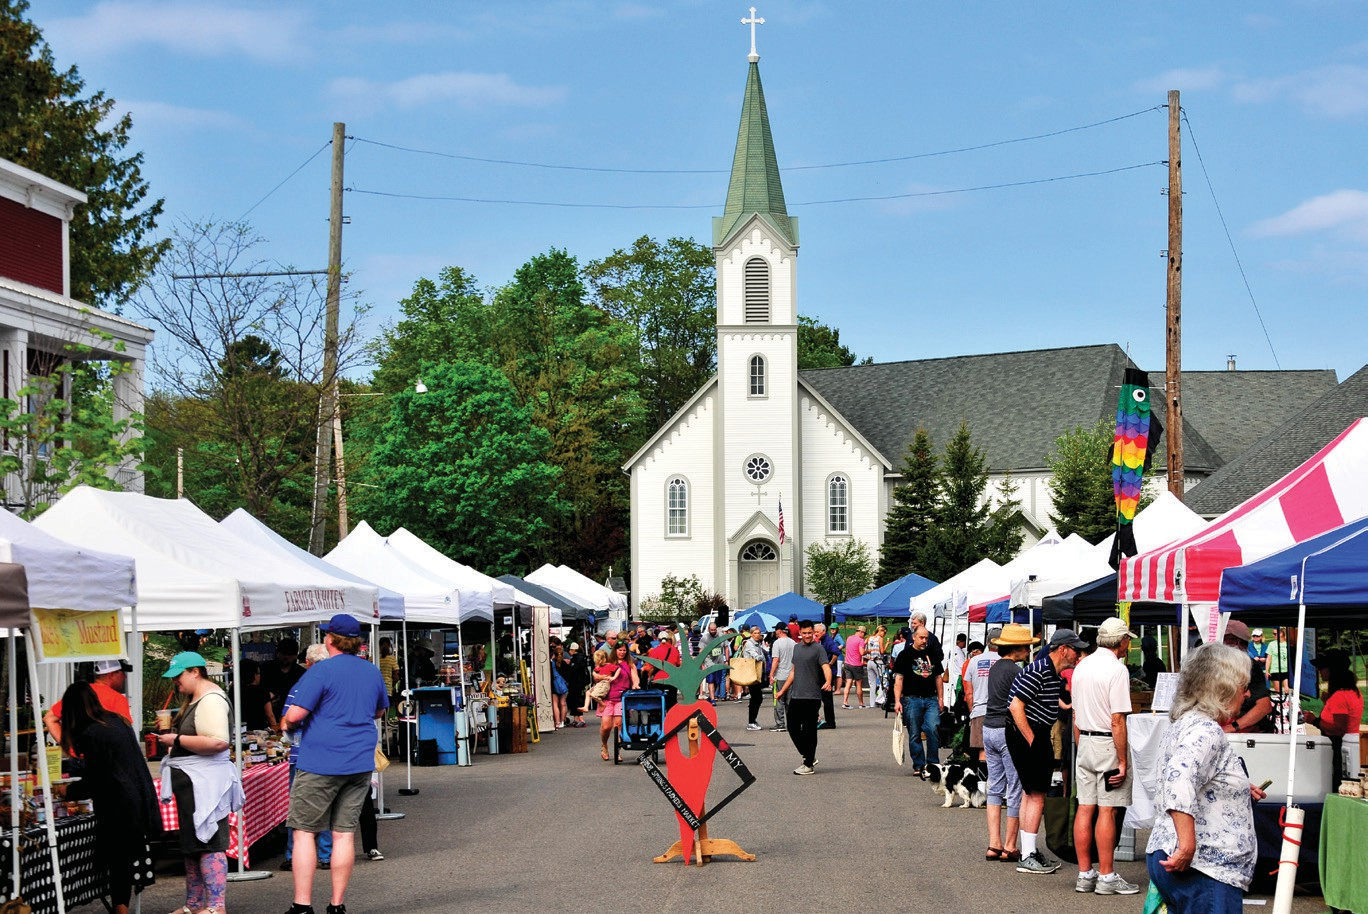 Farmers Market Set To Open 10th Season At Downtown Harbor Springs Location